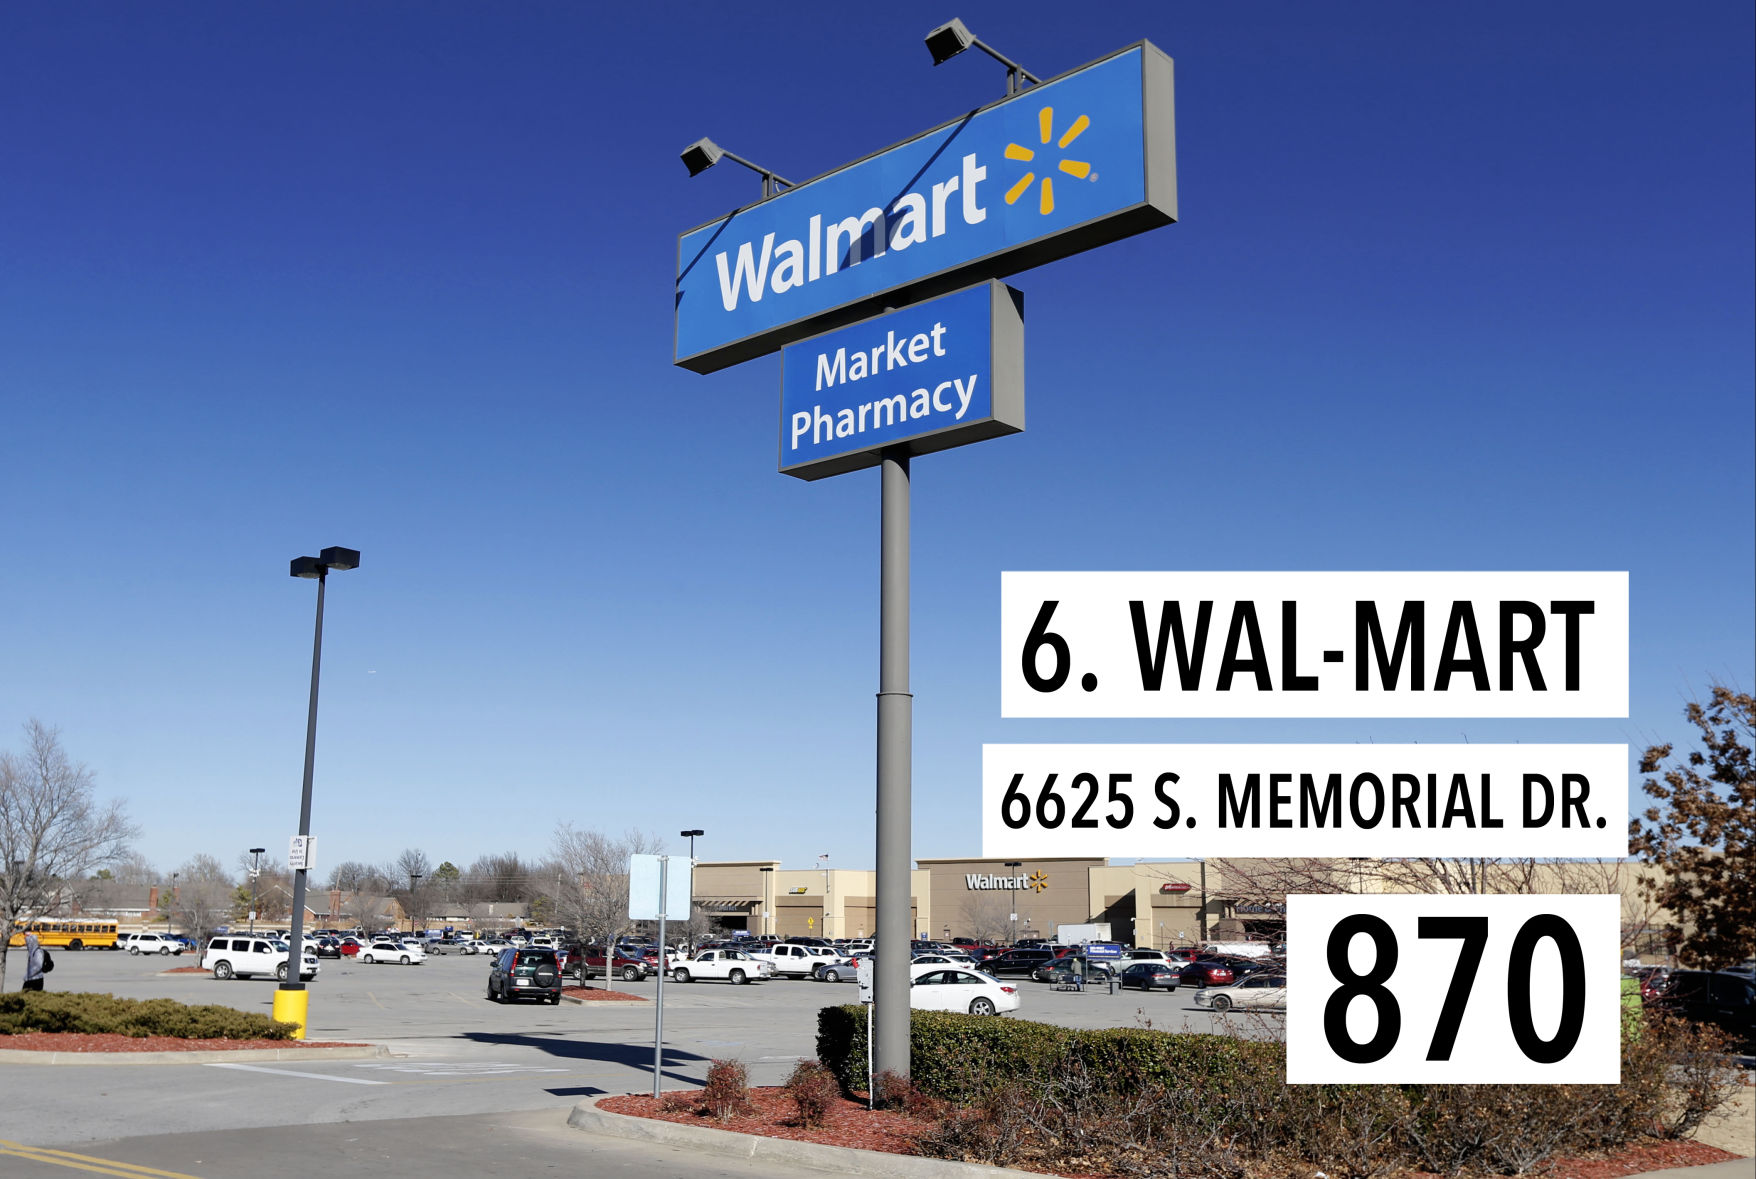 wal mart vs k mart Why was it that wal-mart (nyse:wmt), founded more than 50 years ago in arkansas, grew to become the largest retailer on the planet, instead of rivals such as target or kmart, which were both started around the same time why has warehouse club costco (nasdaq:cost) been able to grow like.